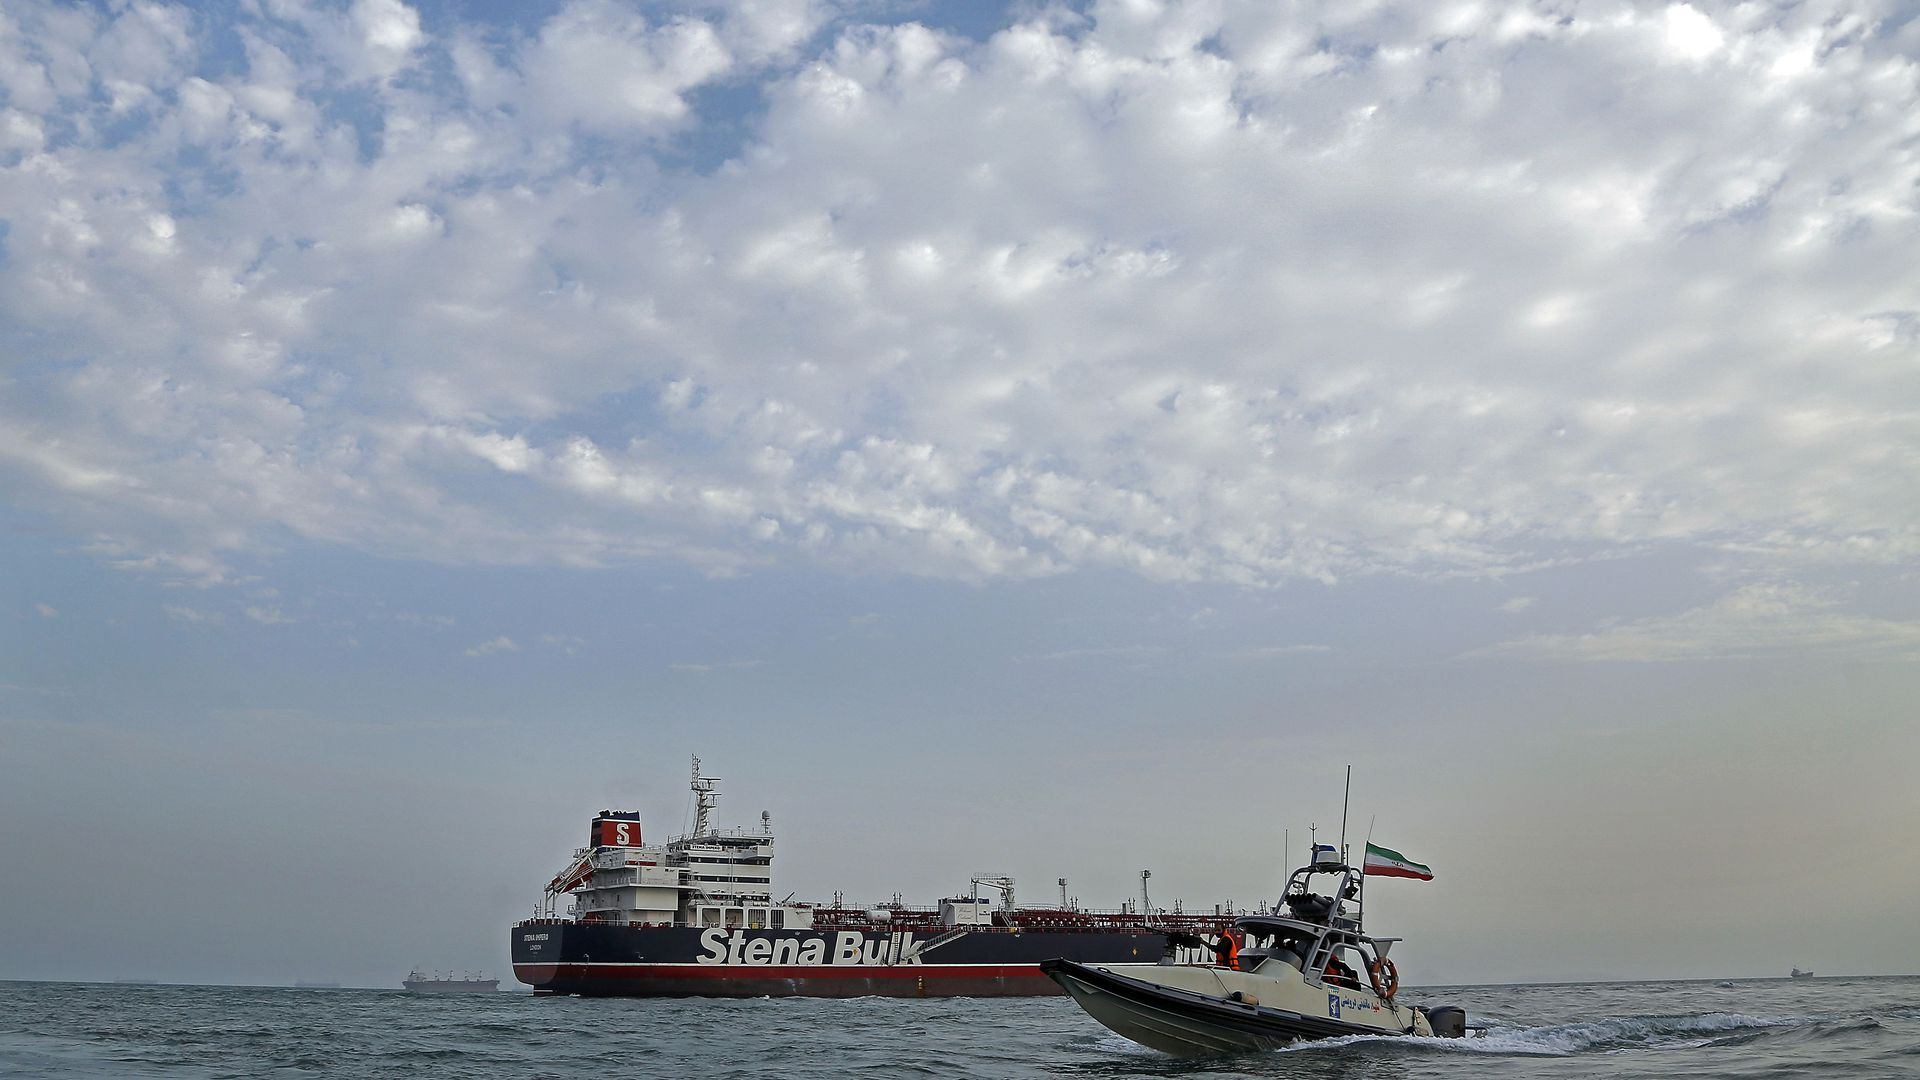 The Stena Impero being seized and detained.